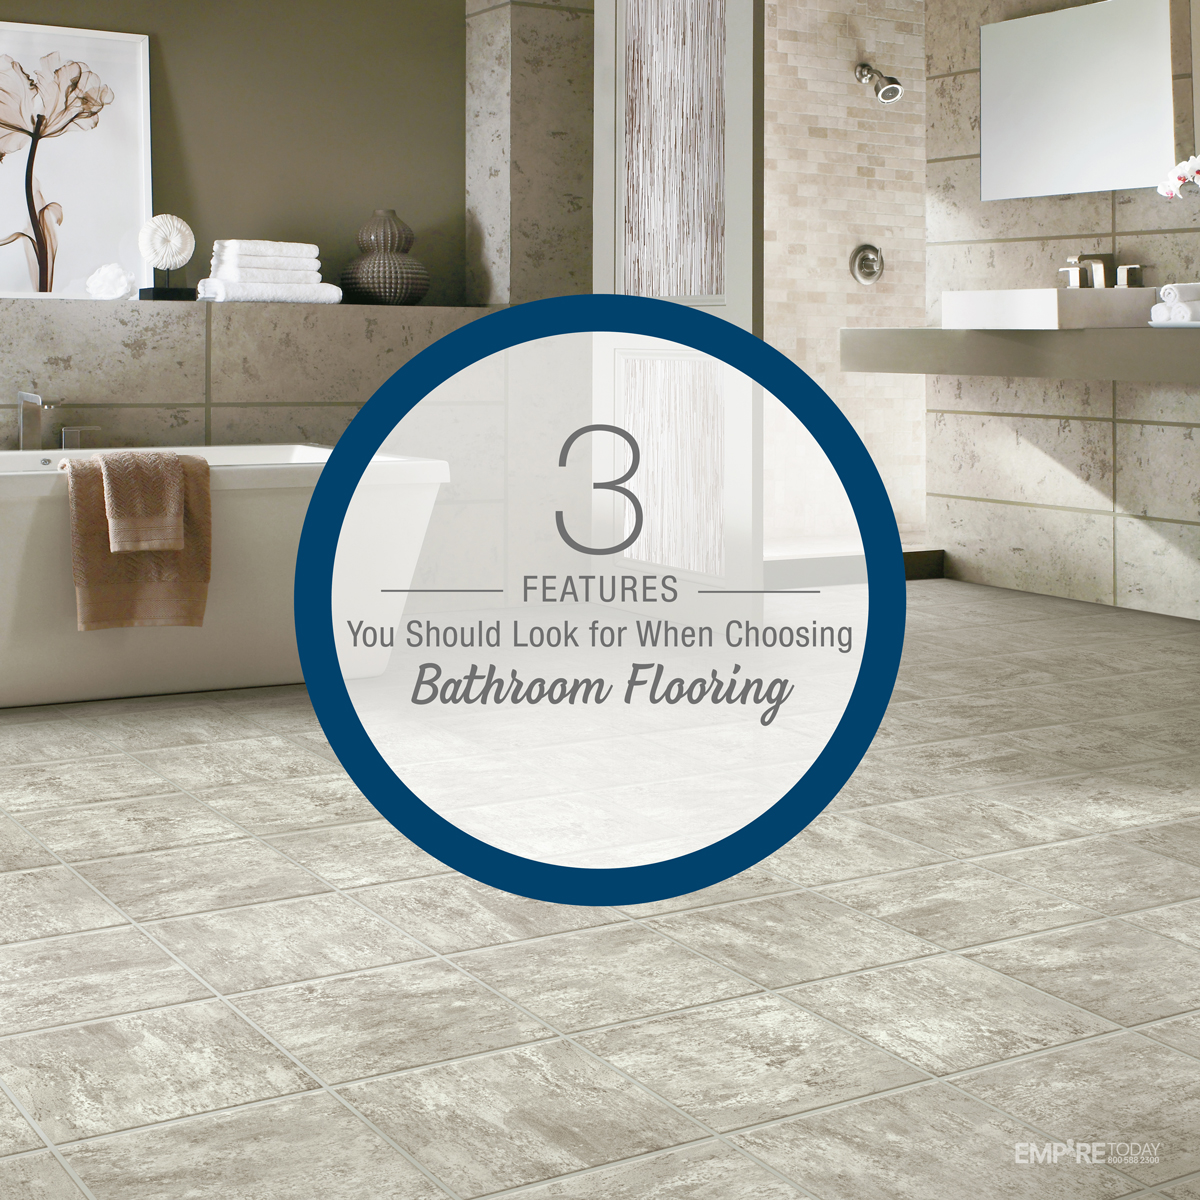 Bathroom flooring features